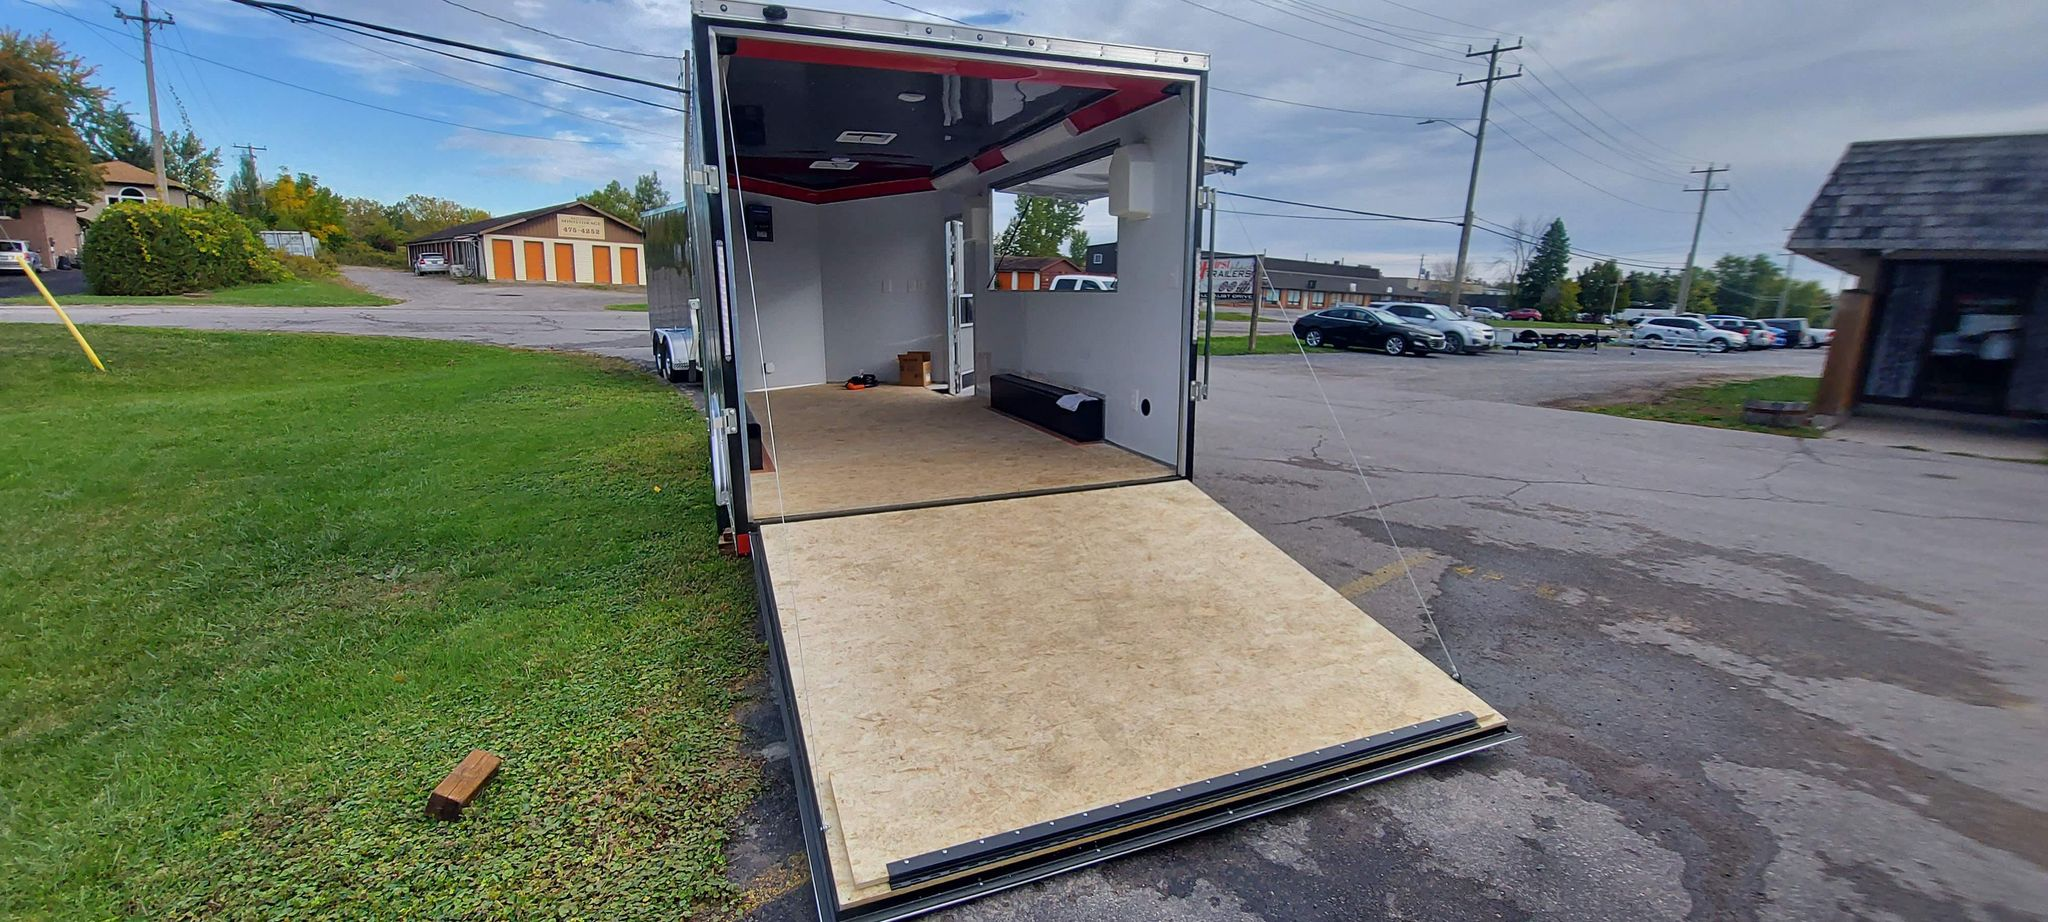 2021 DISCOVERY CHALLENGER 8.5X16 CONCESSION TRAILER